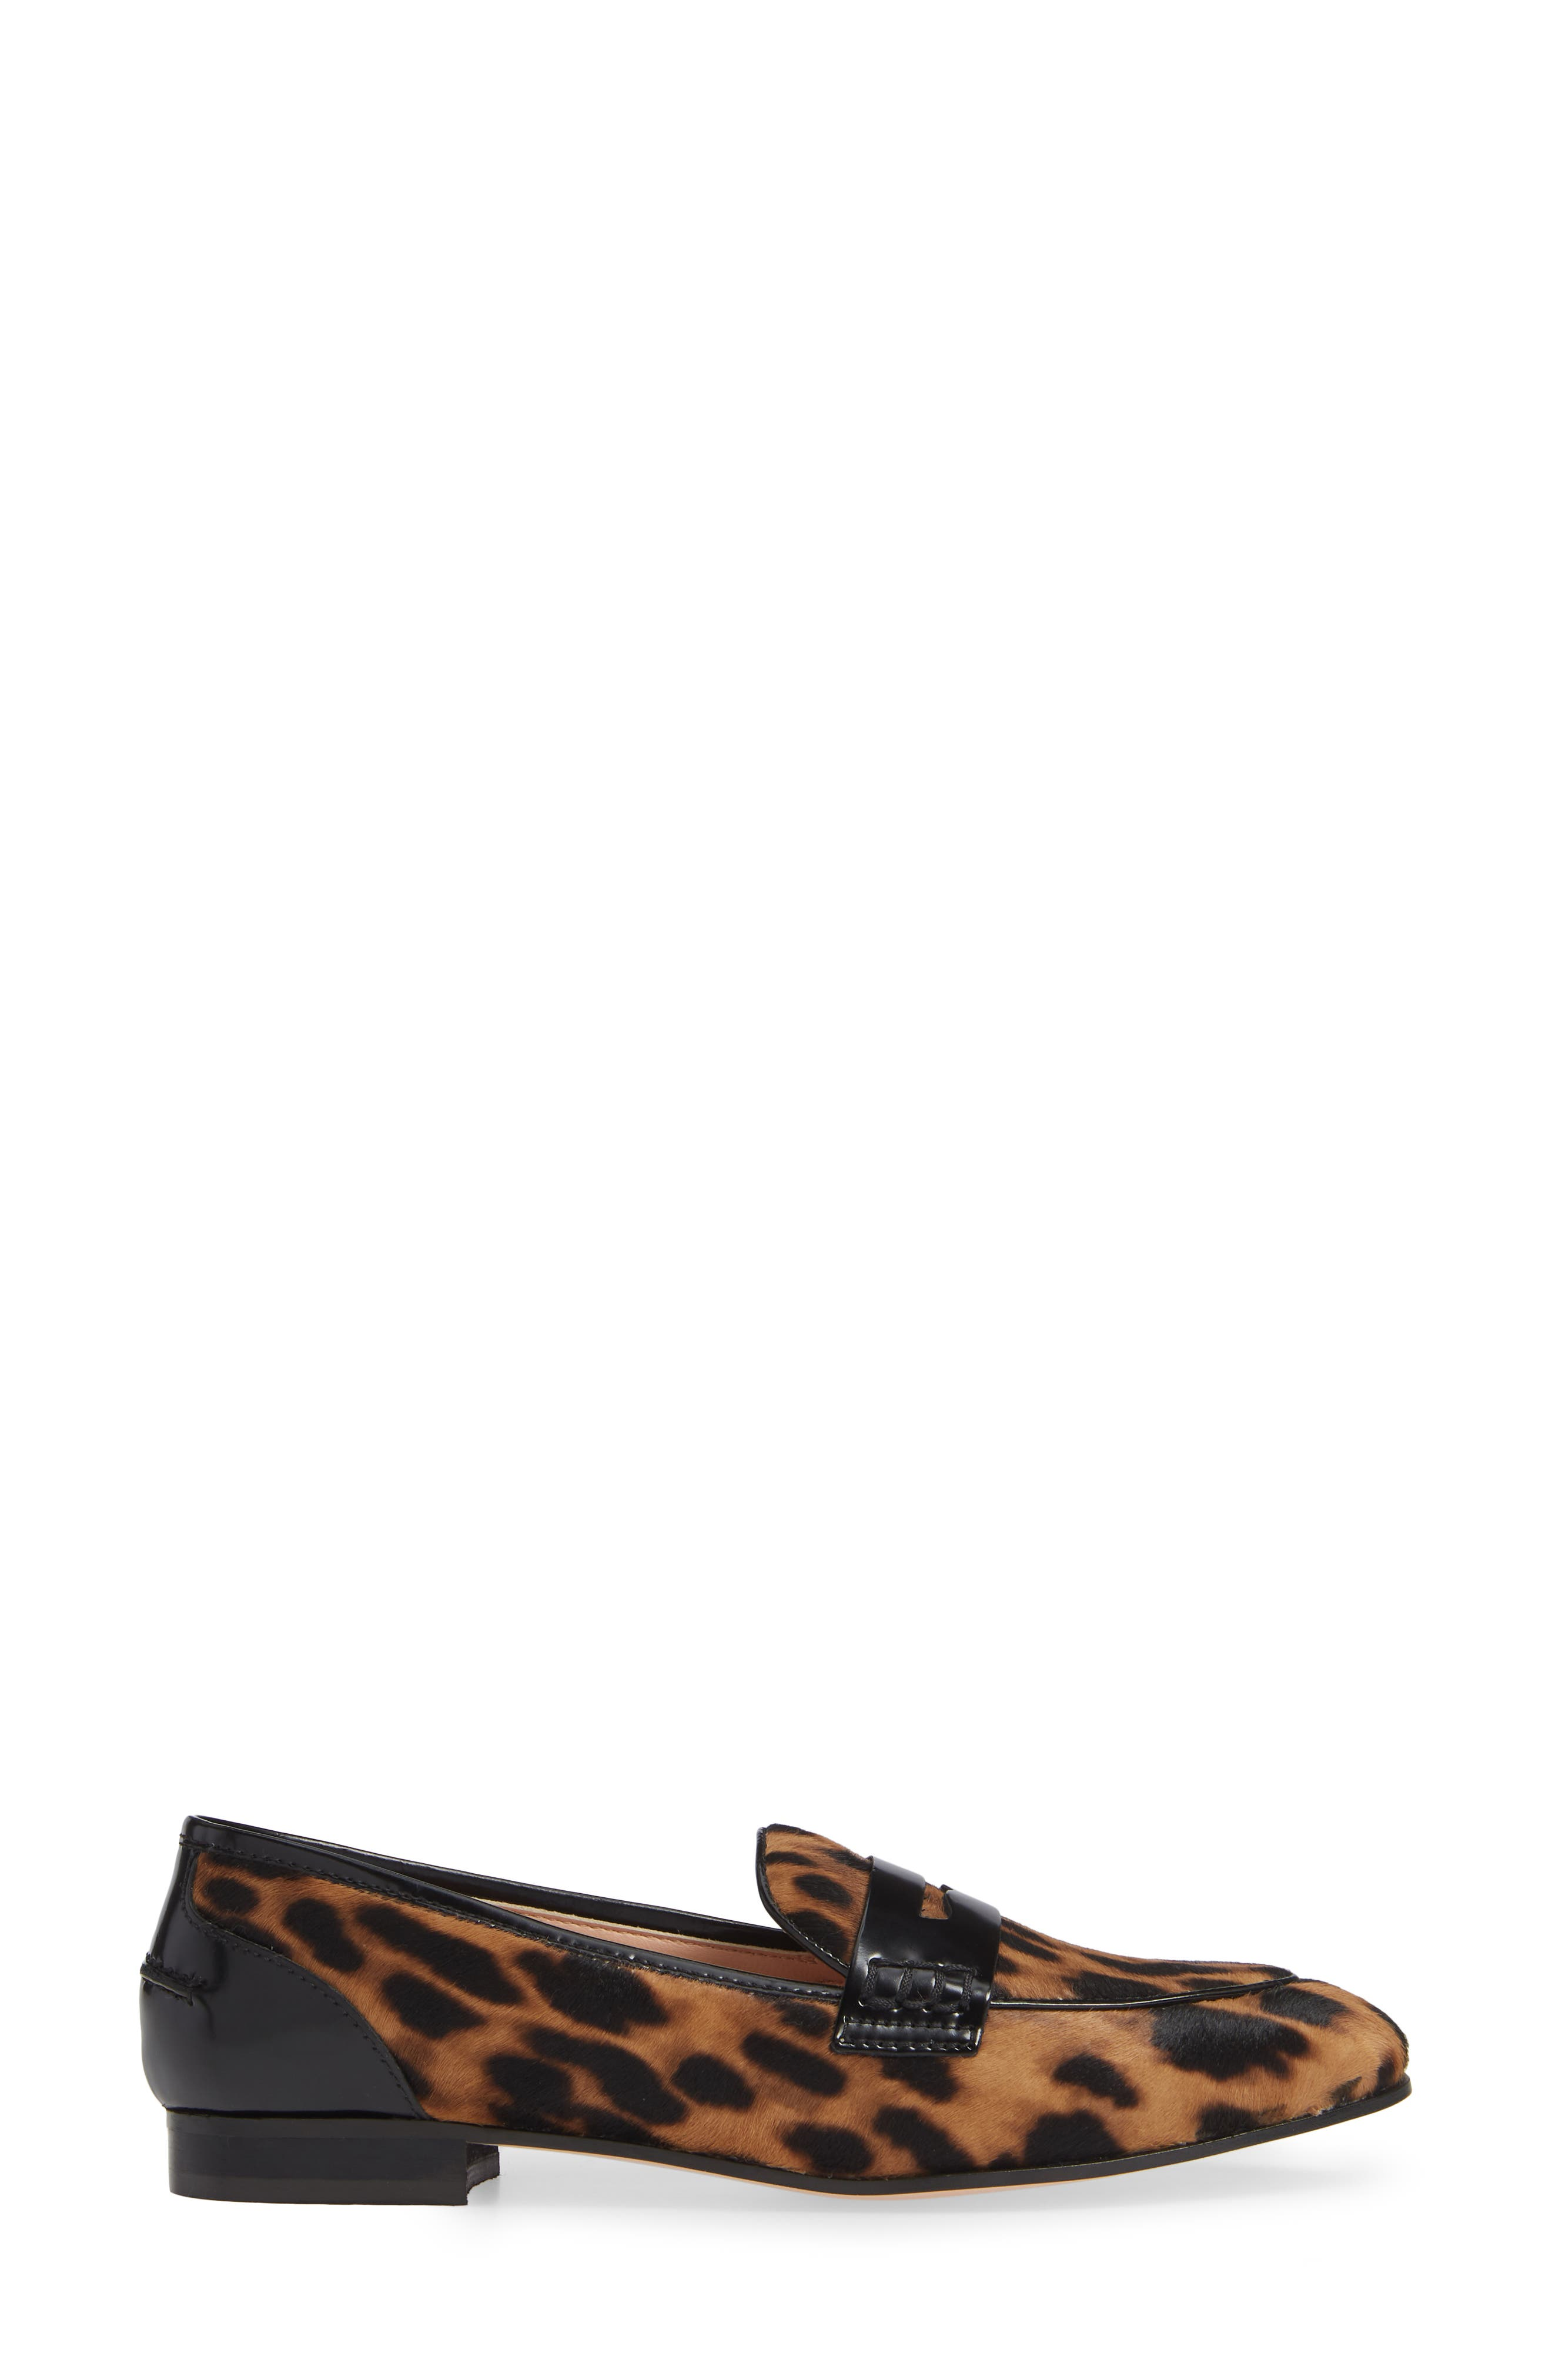 Academy Genuine Calf Hair Penny Loafer,                             Alternate thumbnail 3, color,                             200